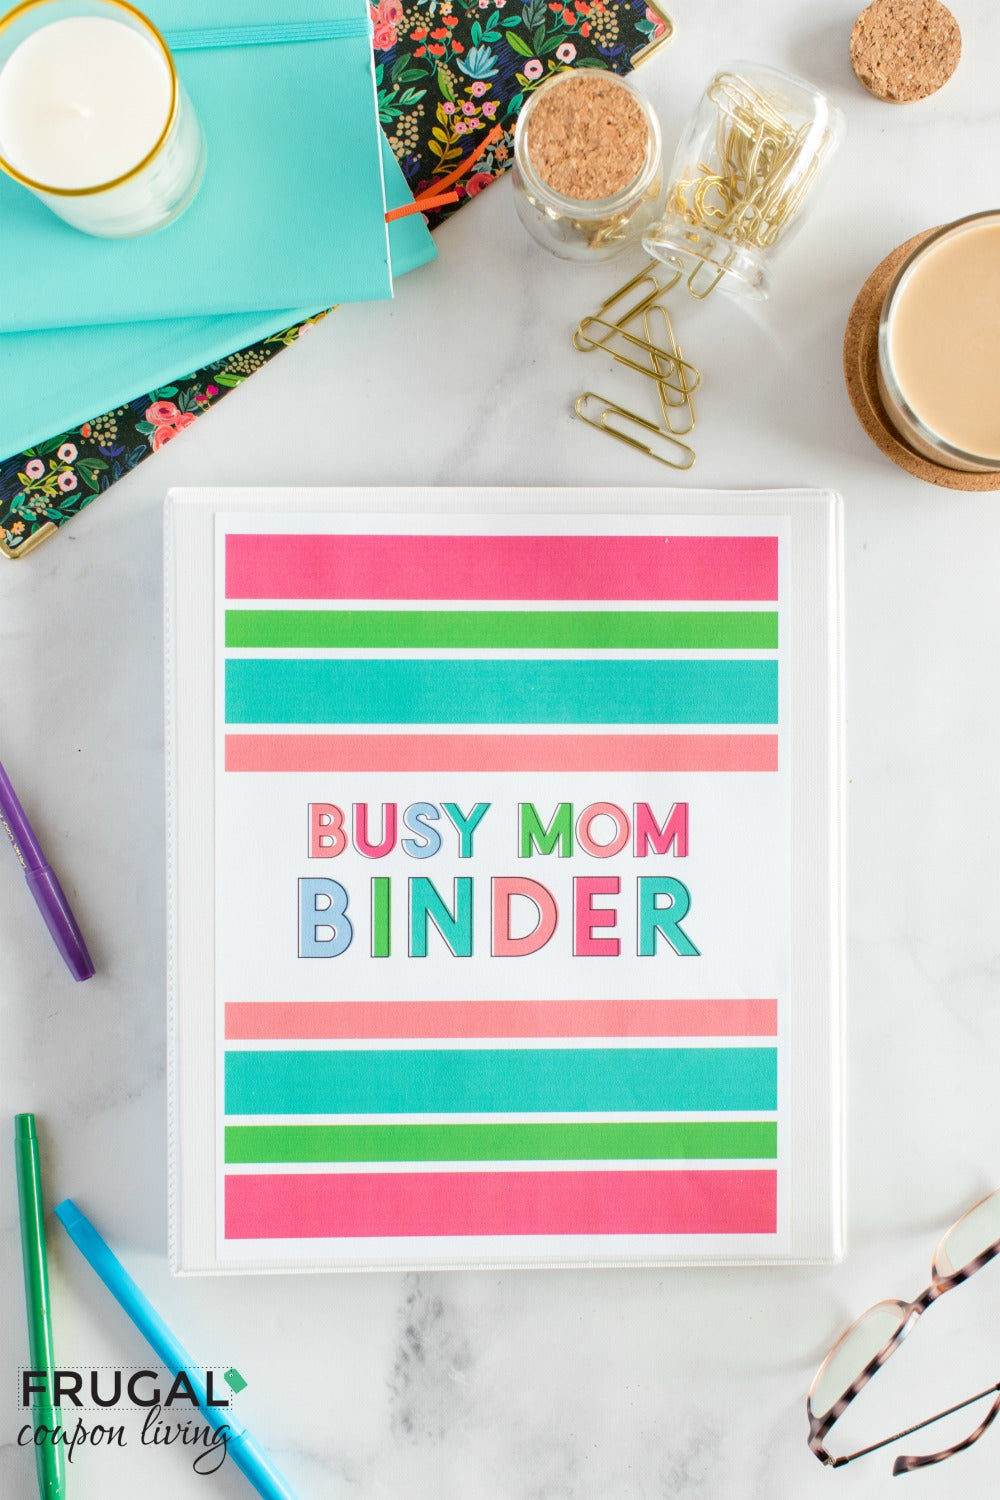 On Sale! The Busy Mom Binder - Limited Time Offer